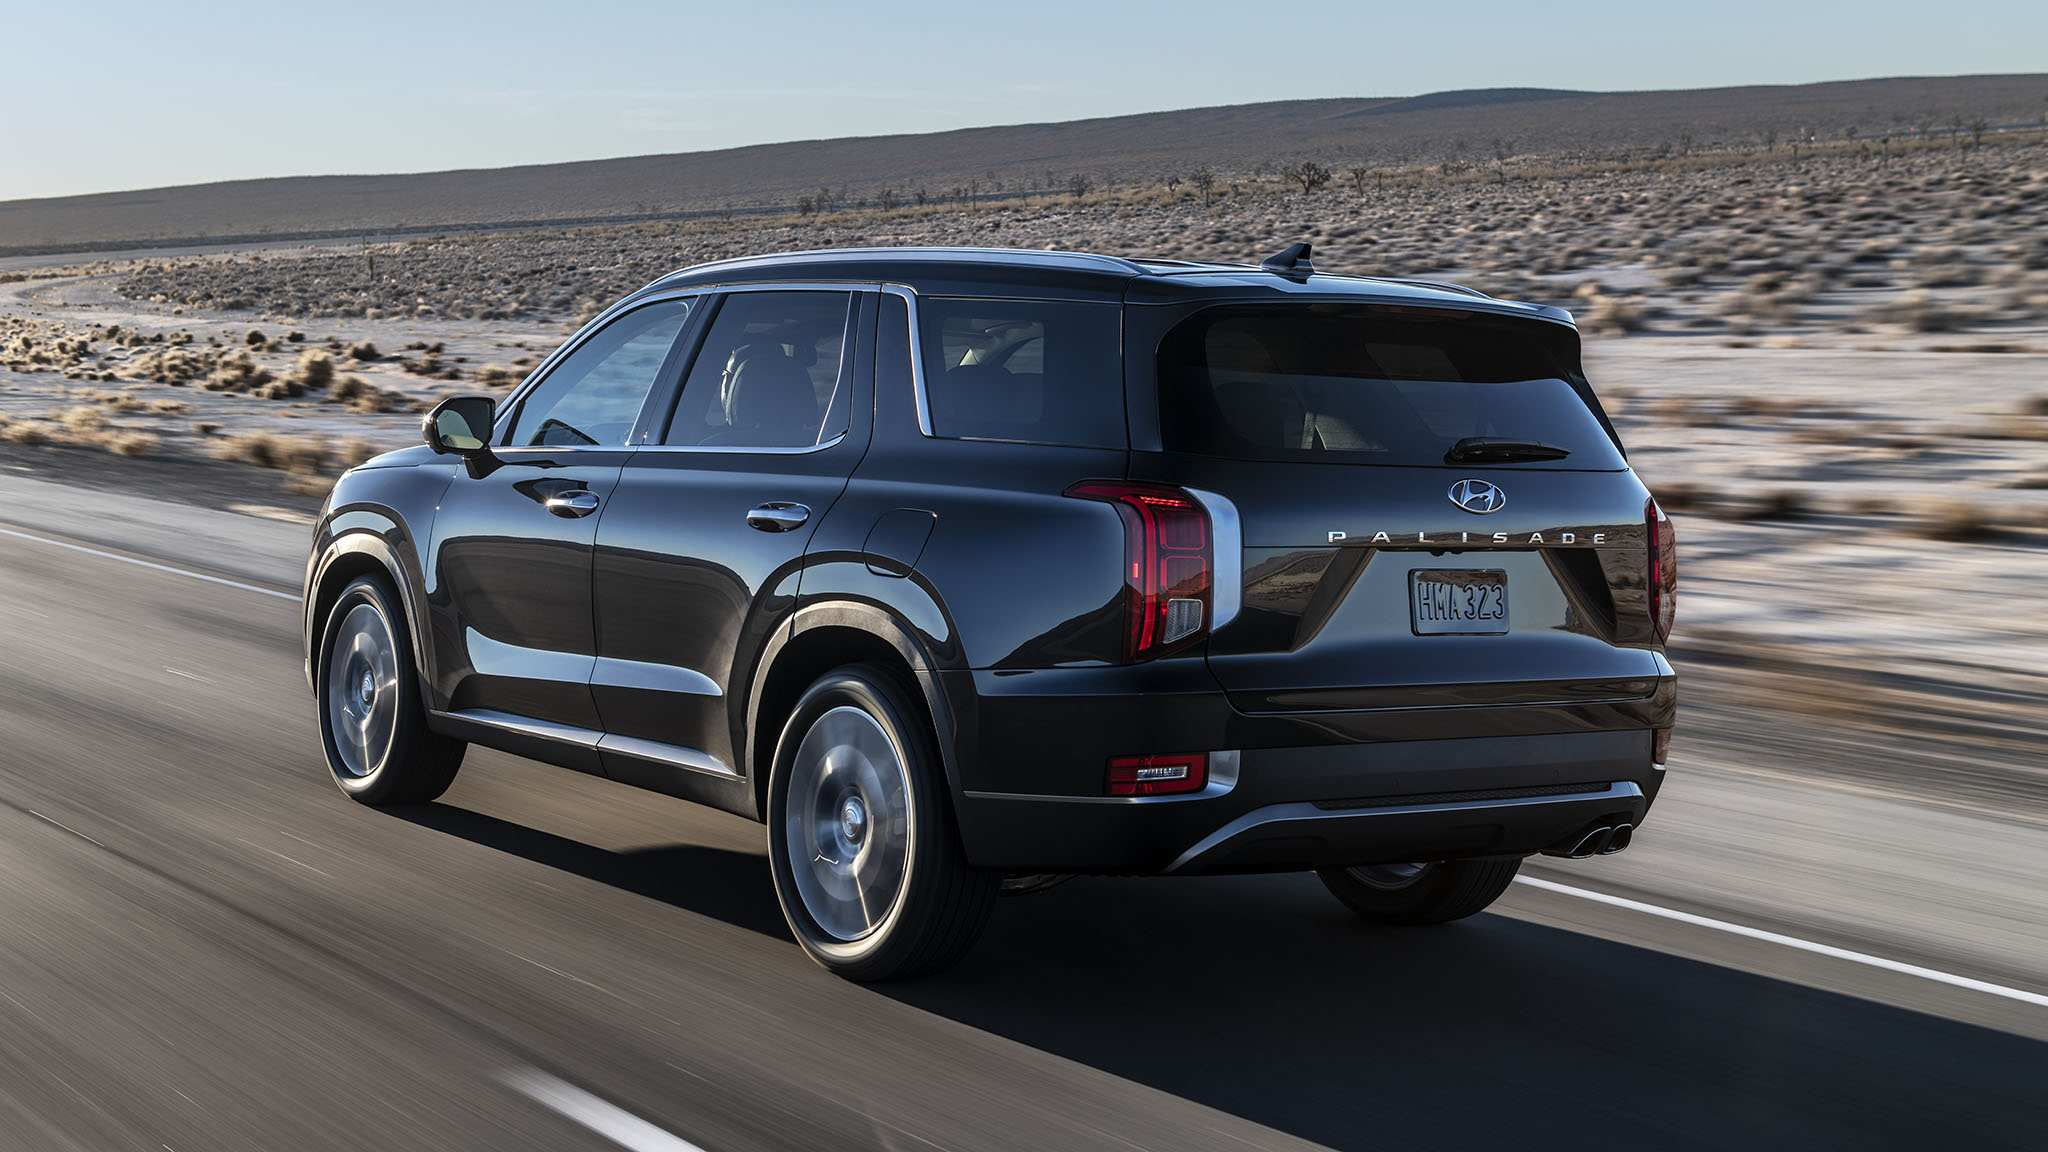 63 The Best Hyundai Suv 2020 Palisade Price Specs And Review